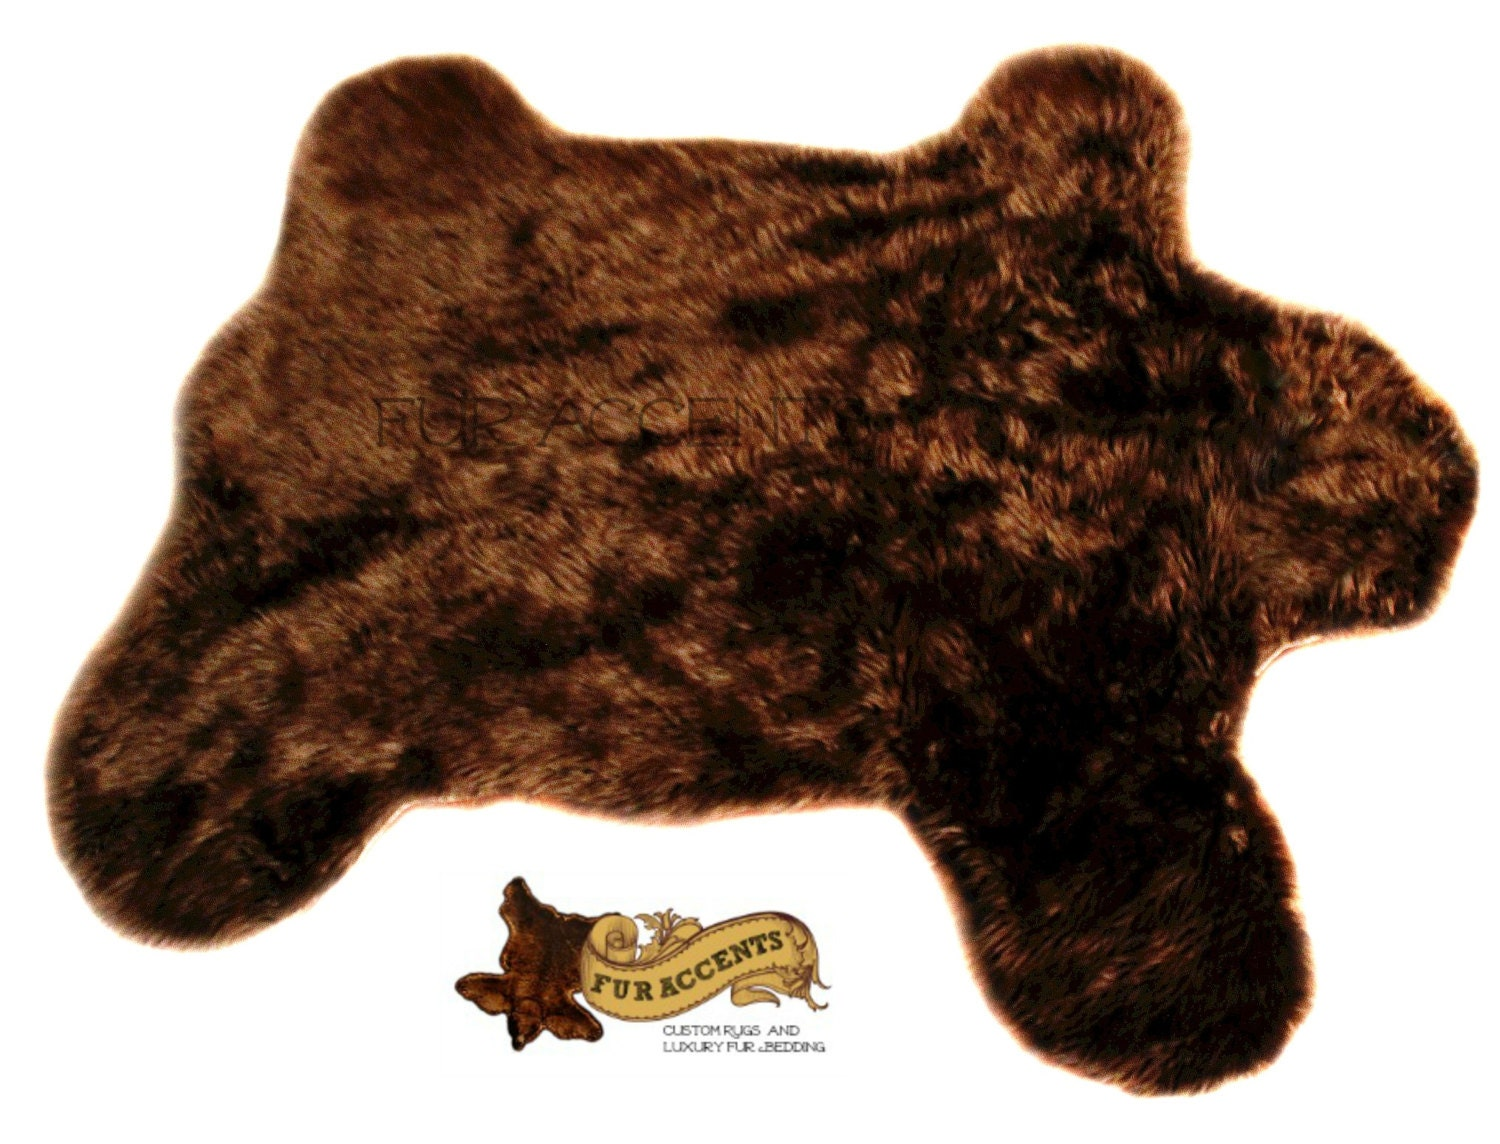 fur accents faux fur teddy bear skin area rug by furaccents. Black Bedroom Furniture Sets. Home Design Ideas